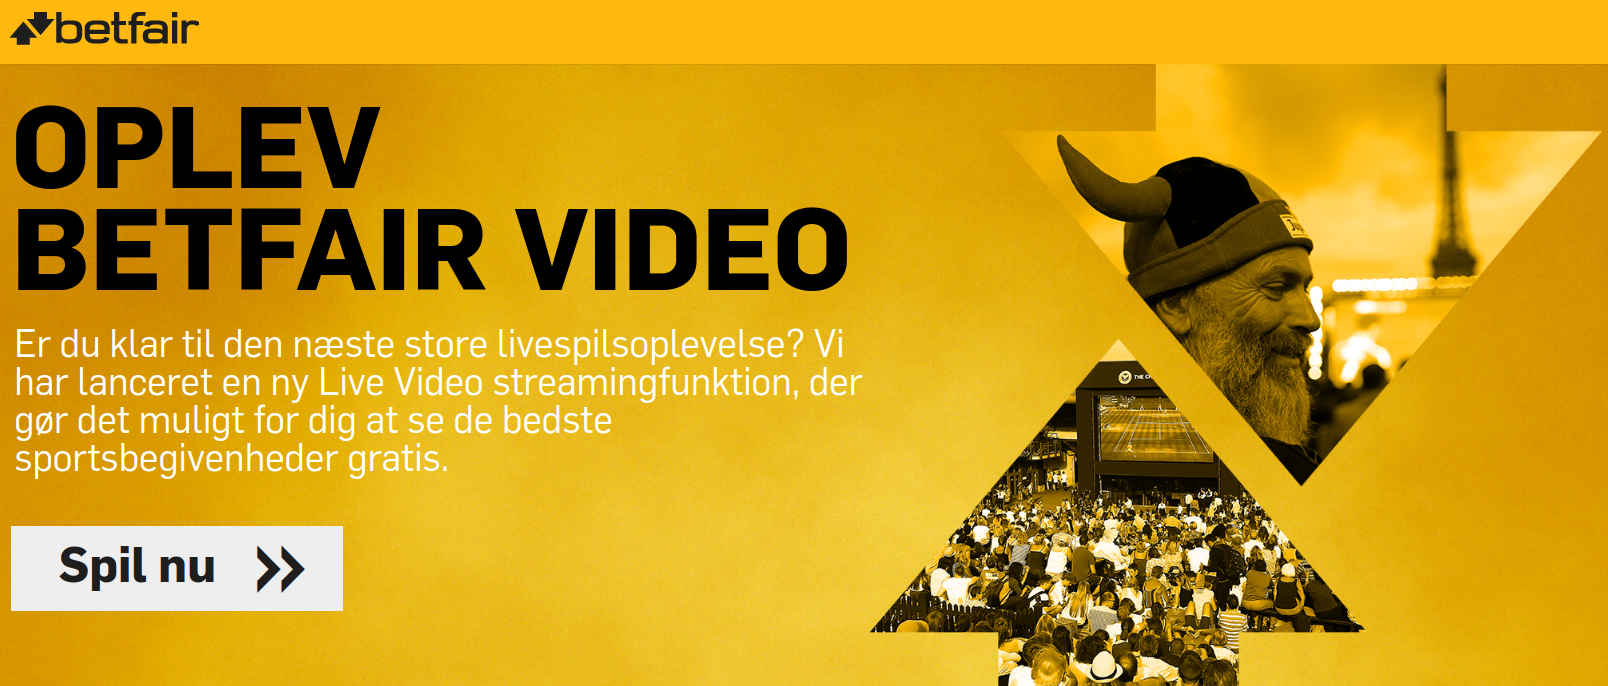 Se gratis sport med Betfair live streaming